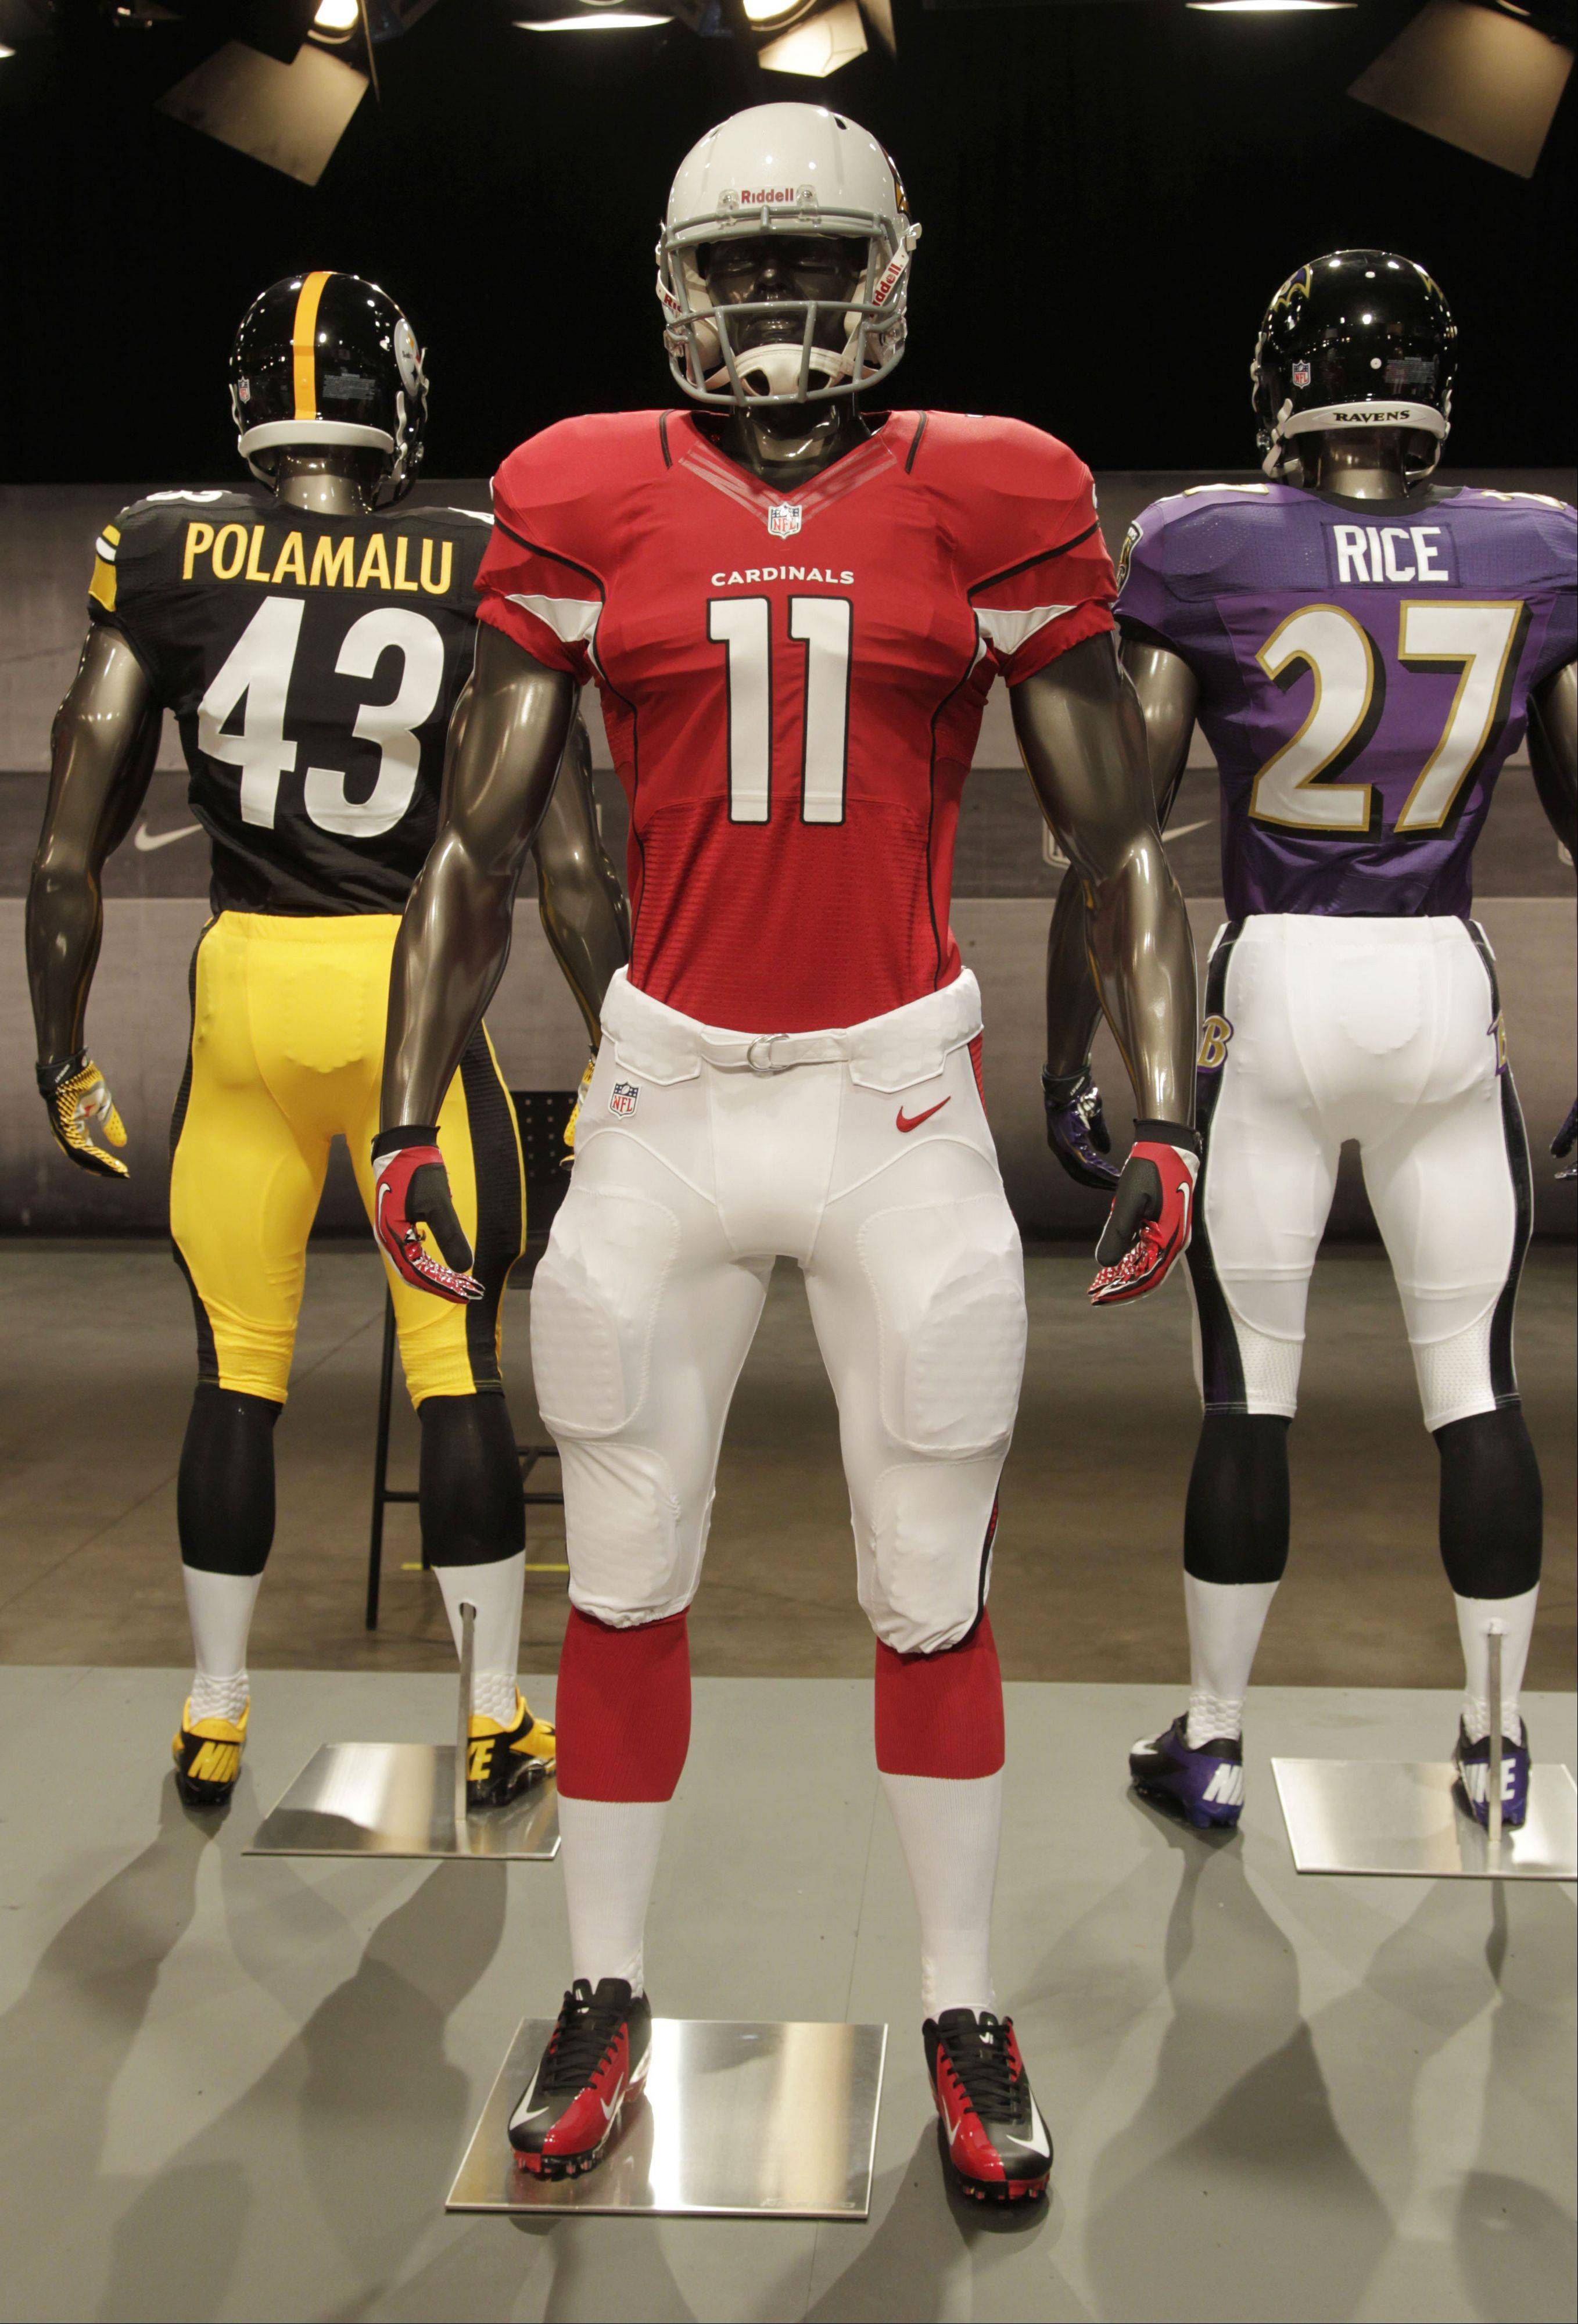 The new Arizona Cardinals uniform is displayed on a mannequin in New York, Tuesday, April 3, 2012. NFL has unveiled its new sleek uniforms designed by Nike. While most of the new uniforms are not very different visually, they all are made with new technology that make them lighter, dryer and more comfortable.